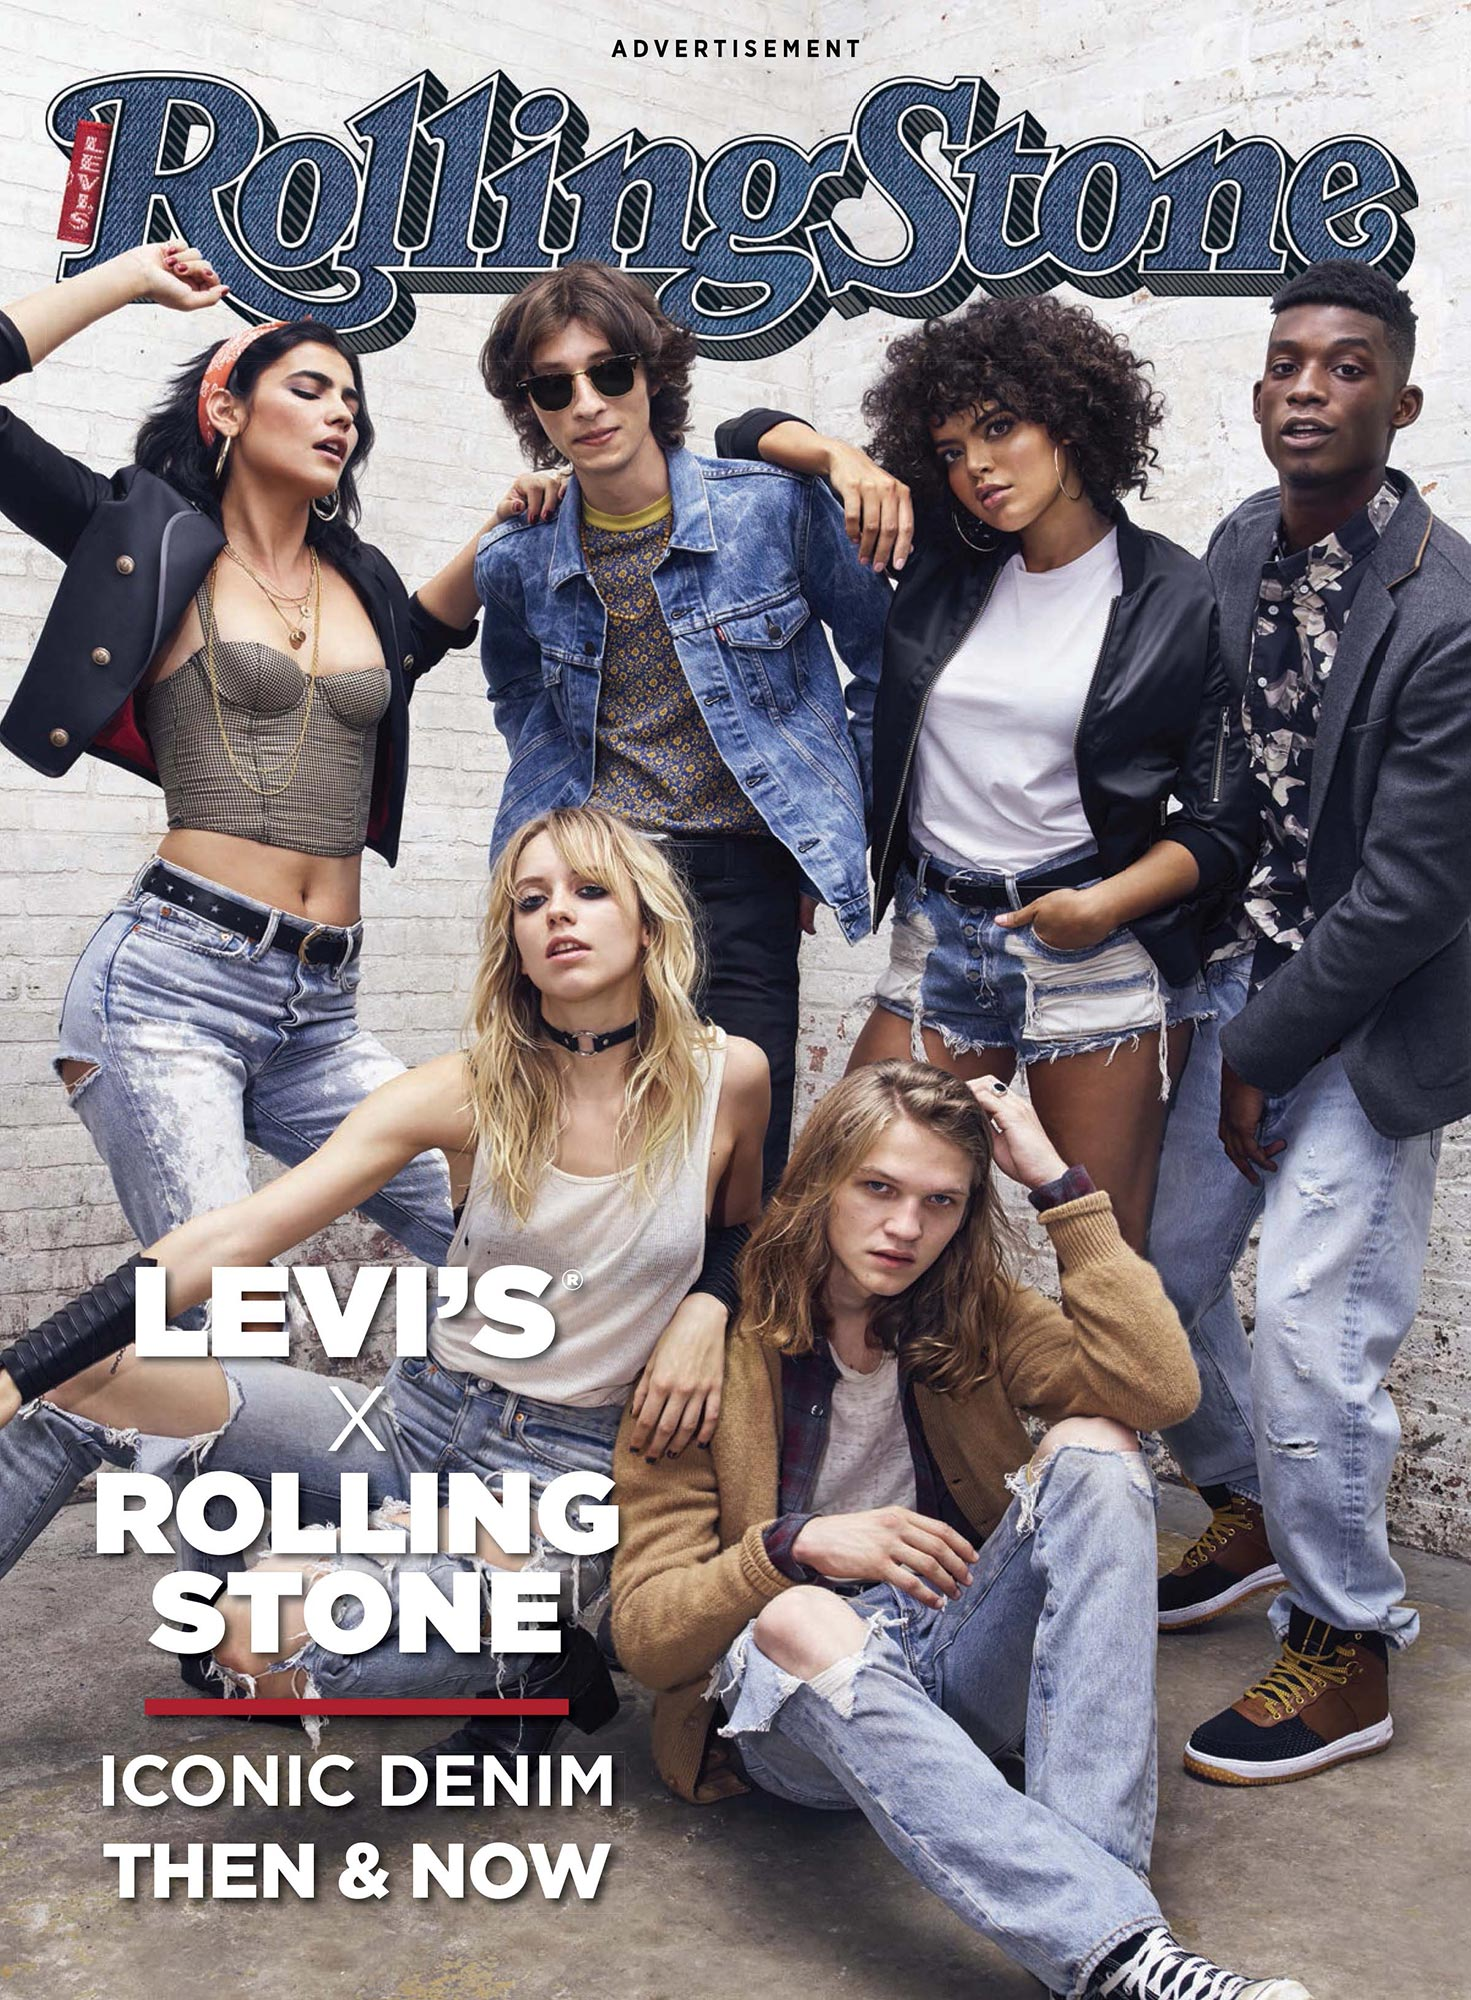 Levi's x Rolling Stone